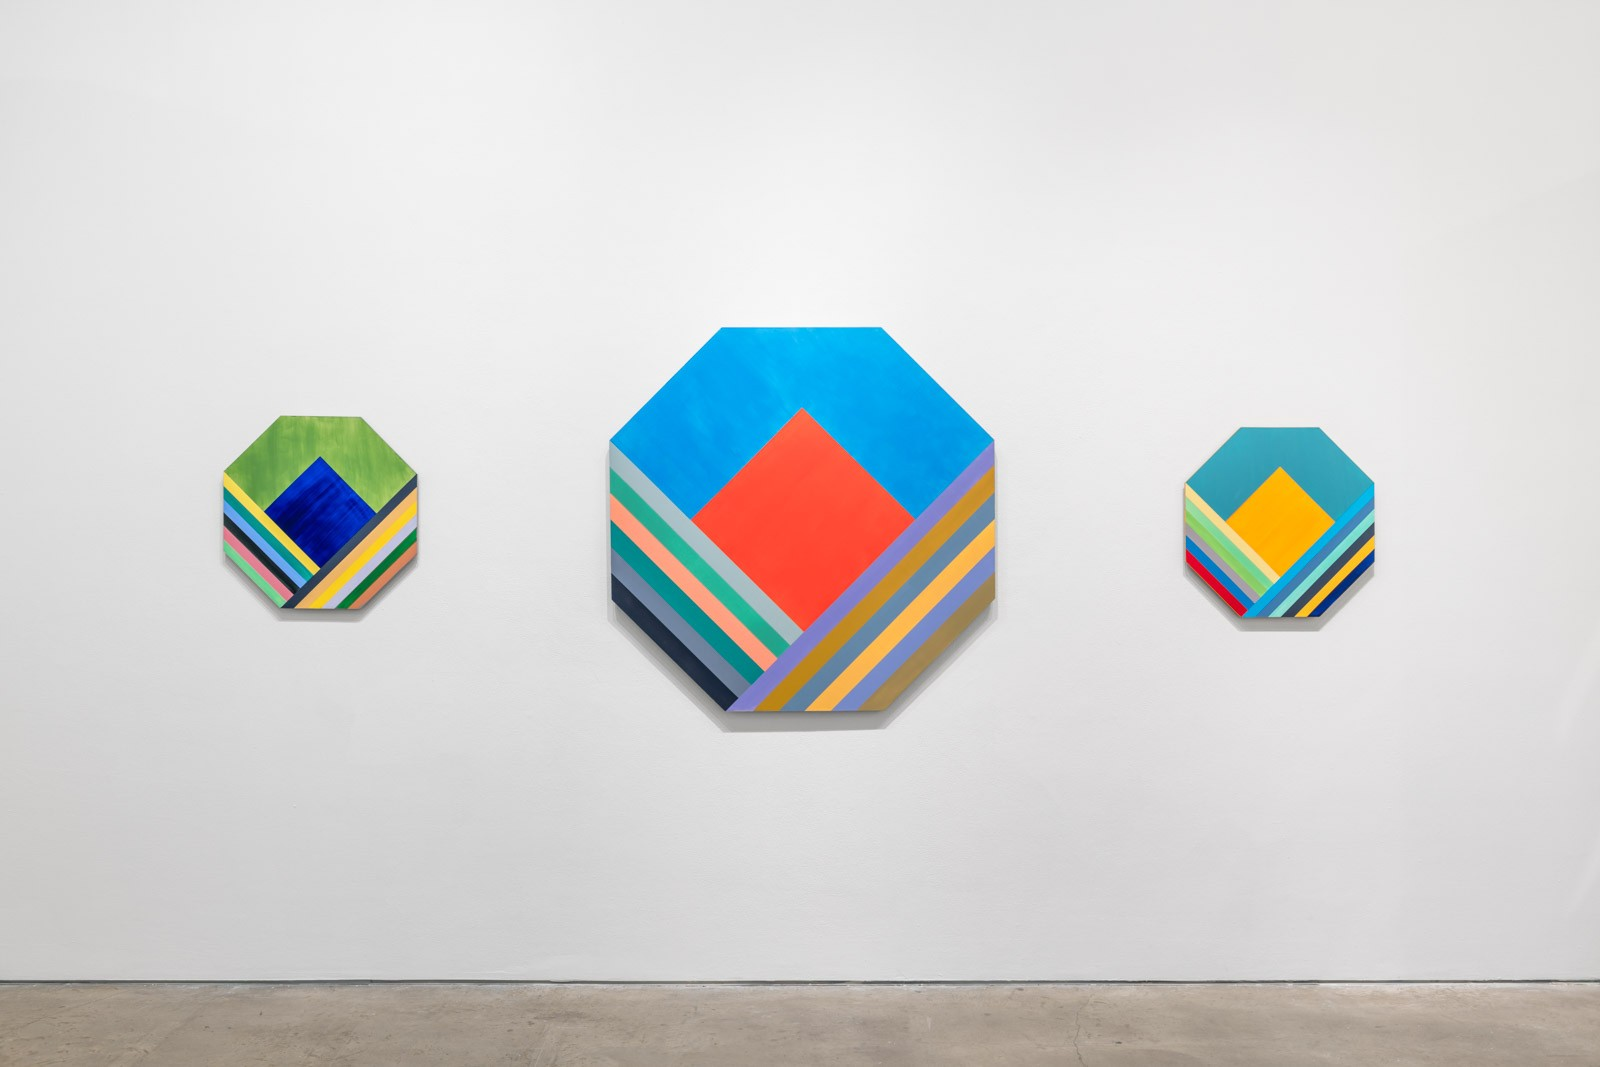 Installation view of 'ORRA' paintings